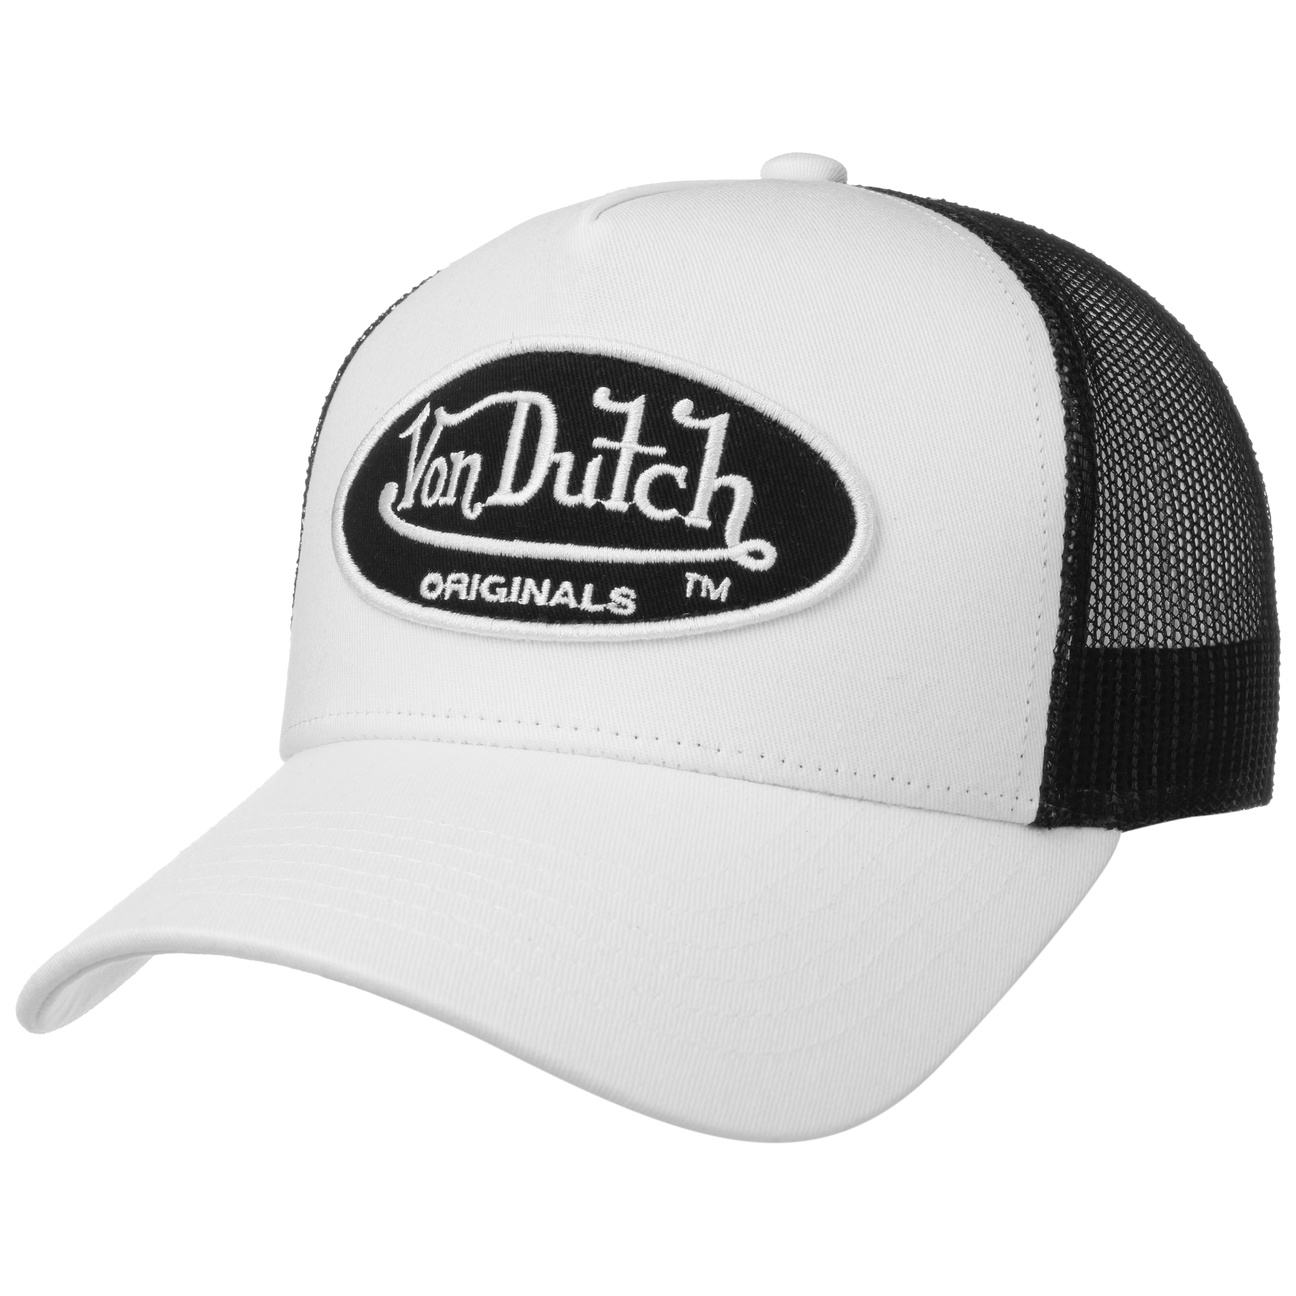 OG Trucker Basecap by Von Dutch